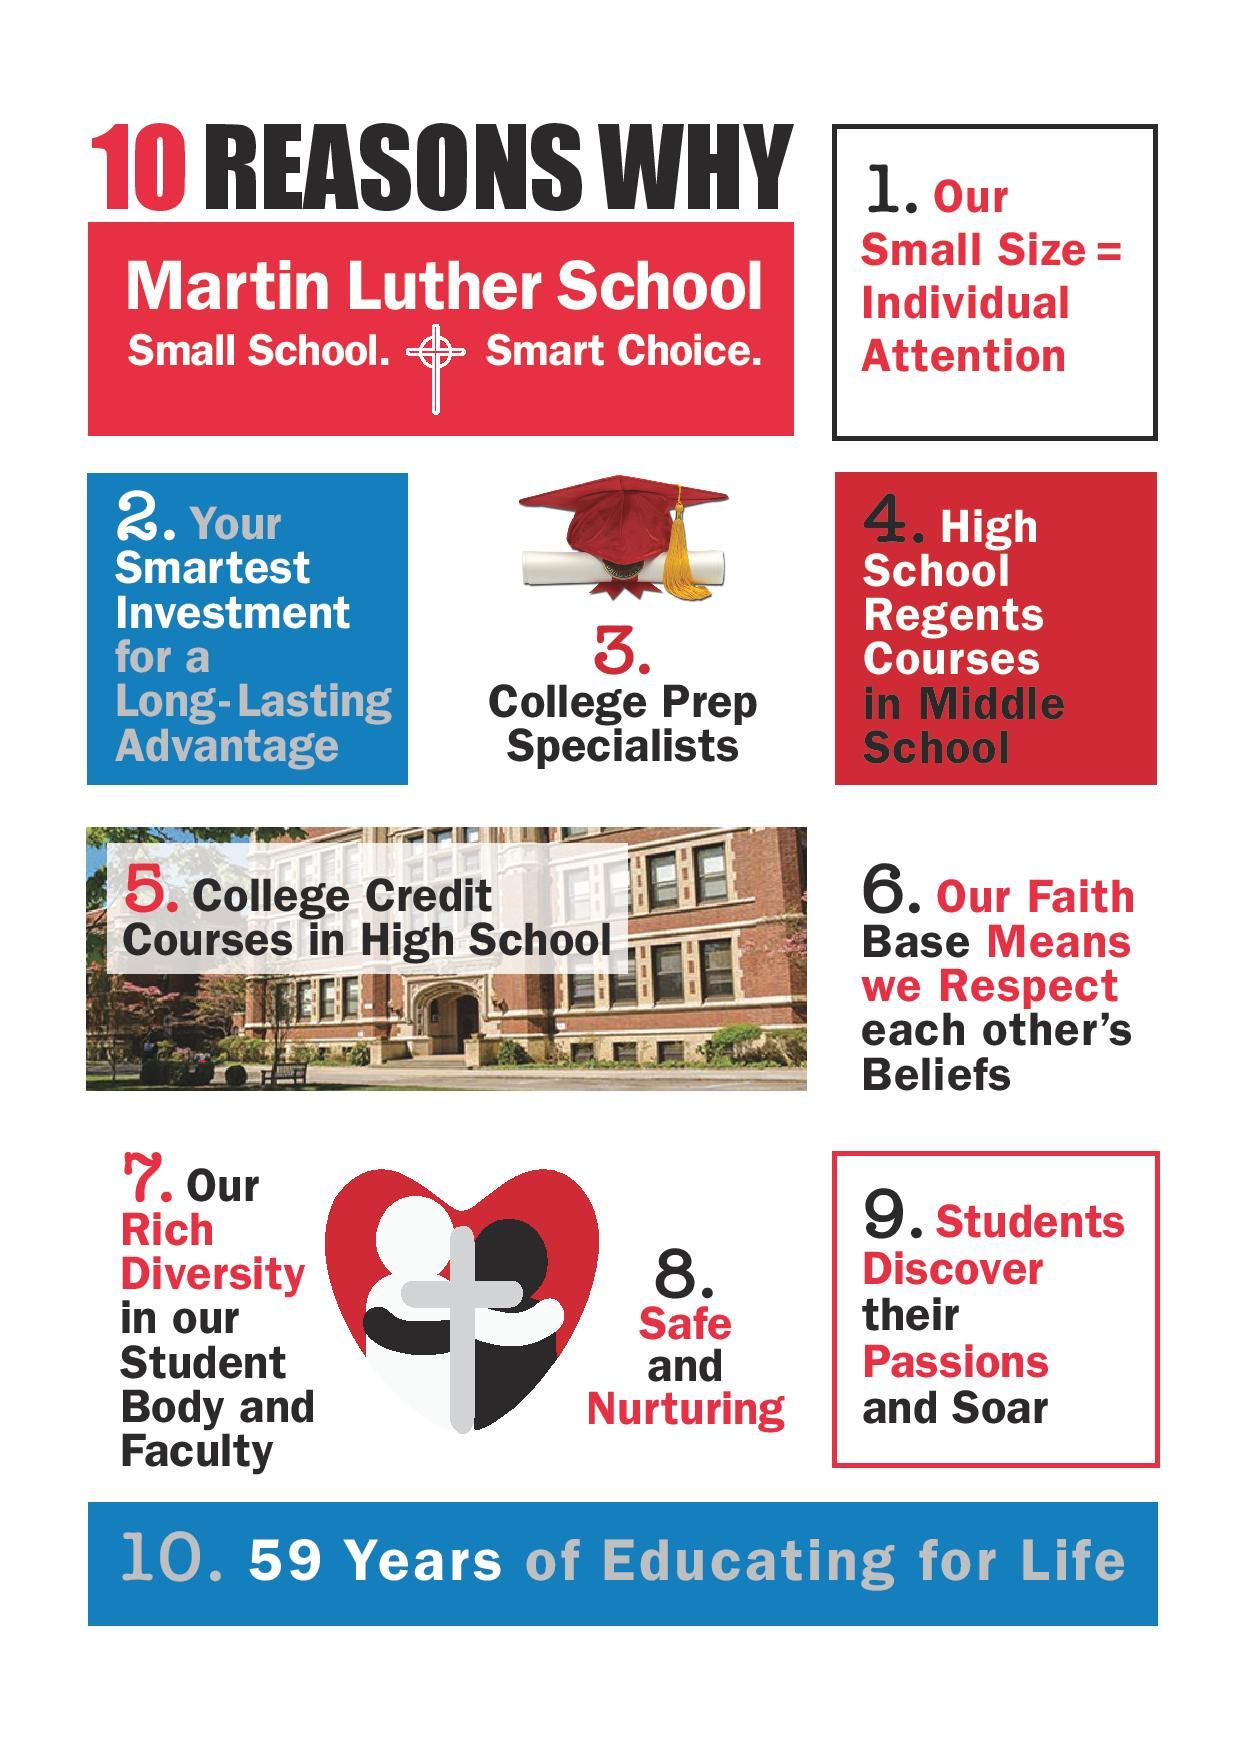 Top 10 reasons to attend Martin Luther School